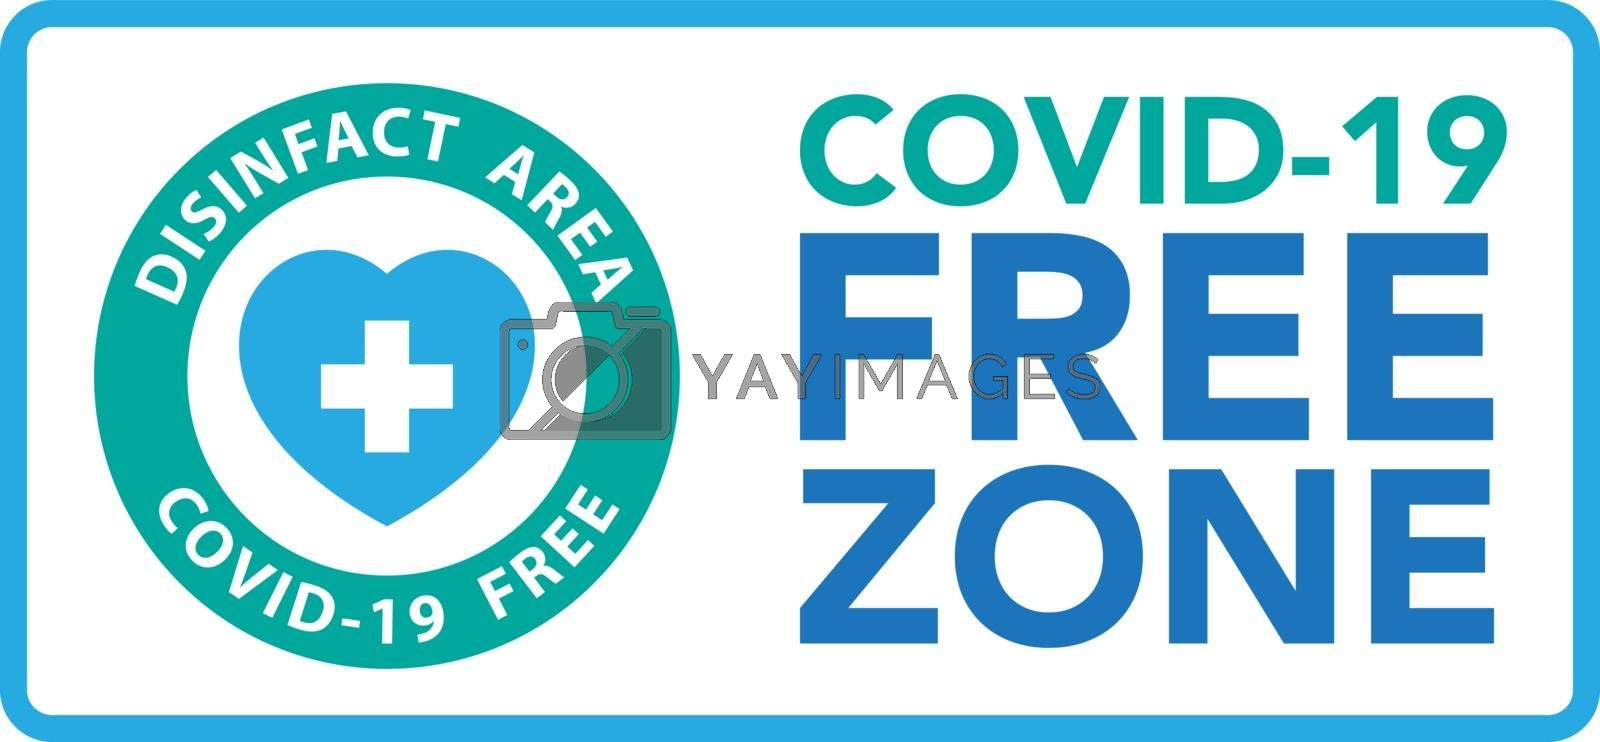 Covid free zone sign symbol by kanate